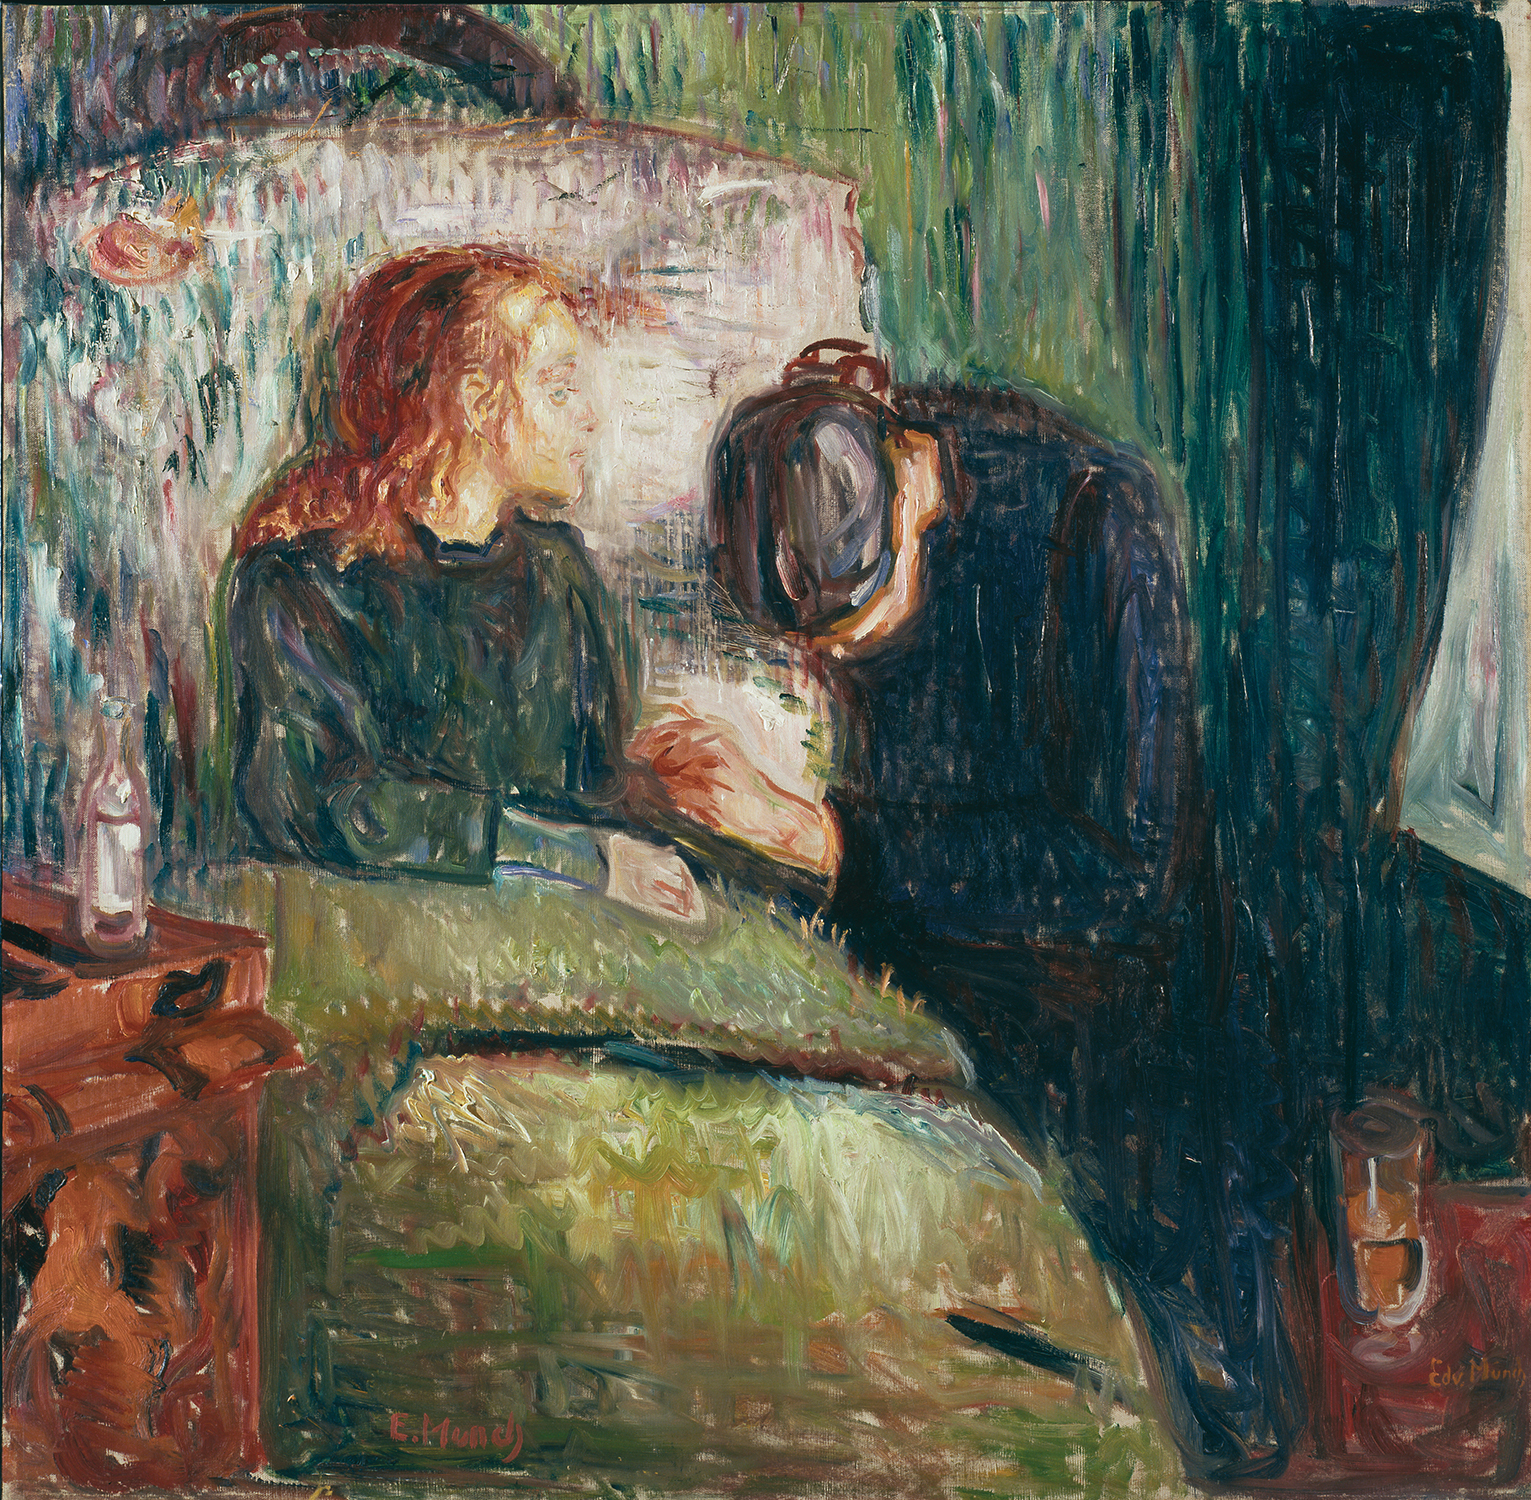 Norwegian would: the efforts of Edvard Munch by Franklin